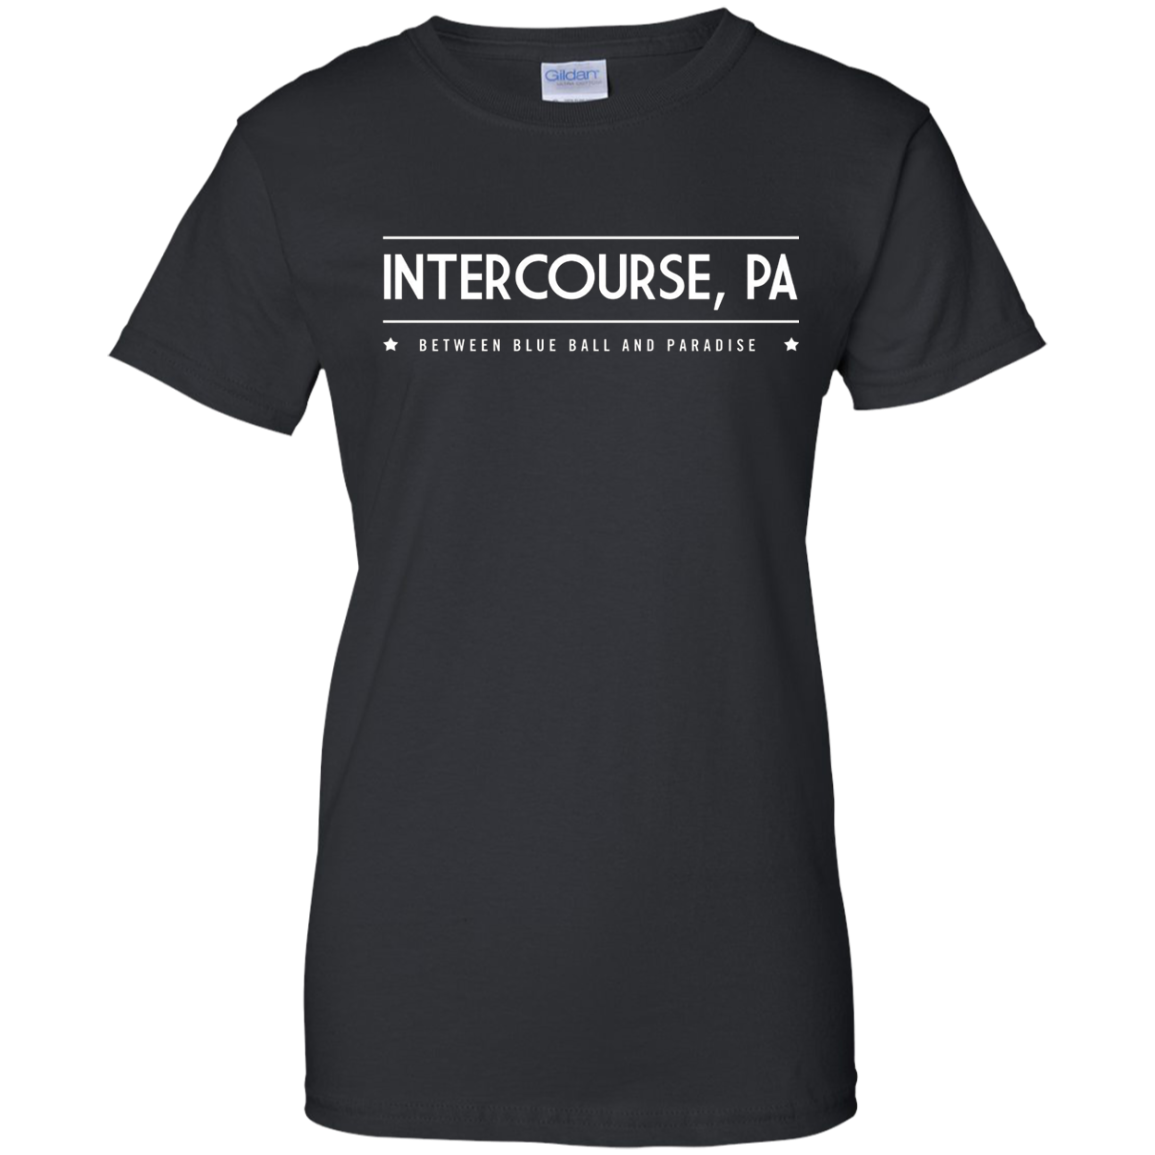 Intercourse PA T-Shirt - Between Blue Ball and Paradise Tee